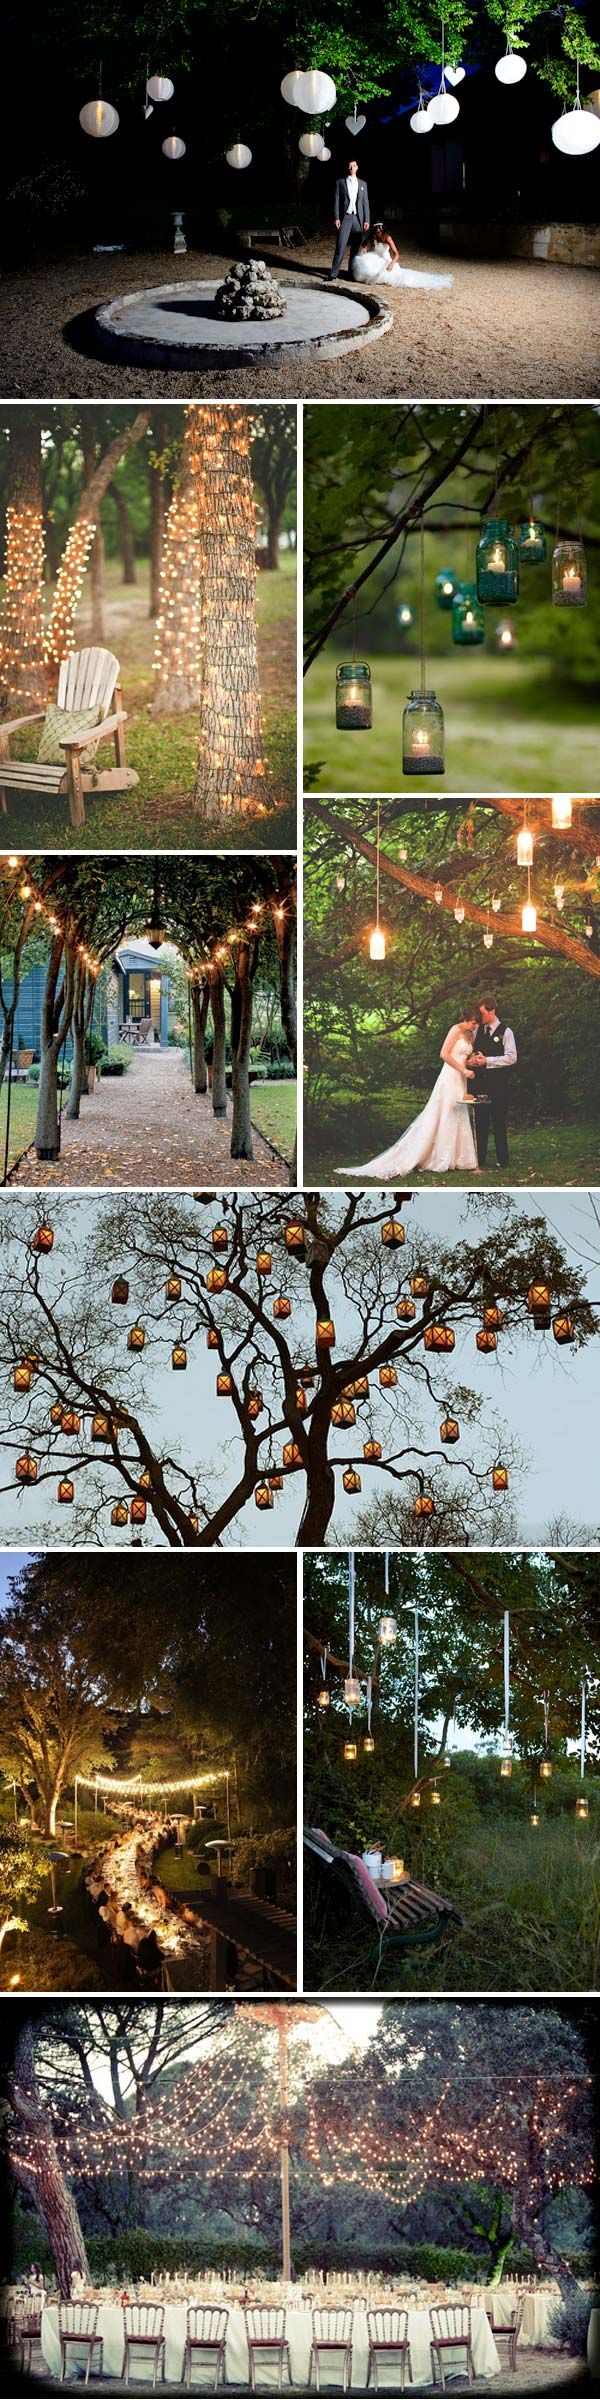 Lighting Ideas For Outdoor Wedding : the great outdoors lighting love these